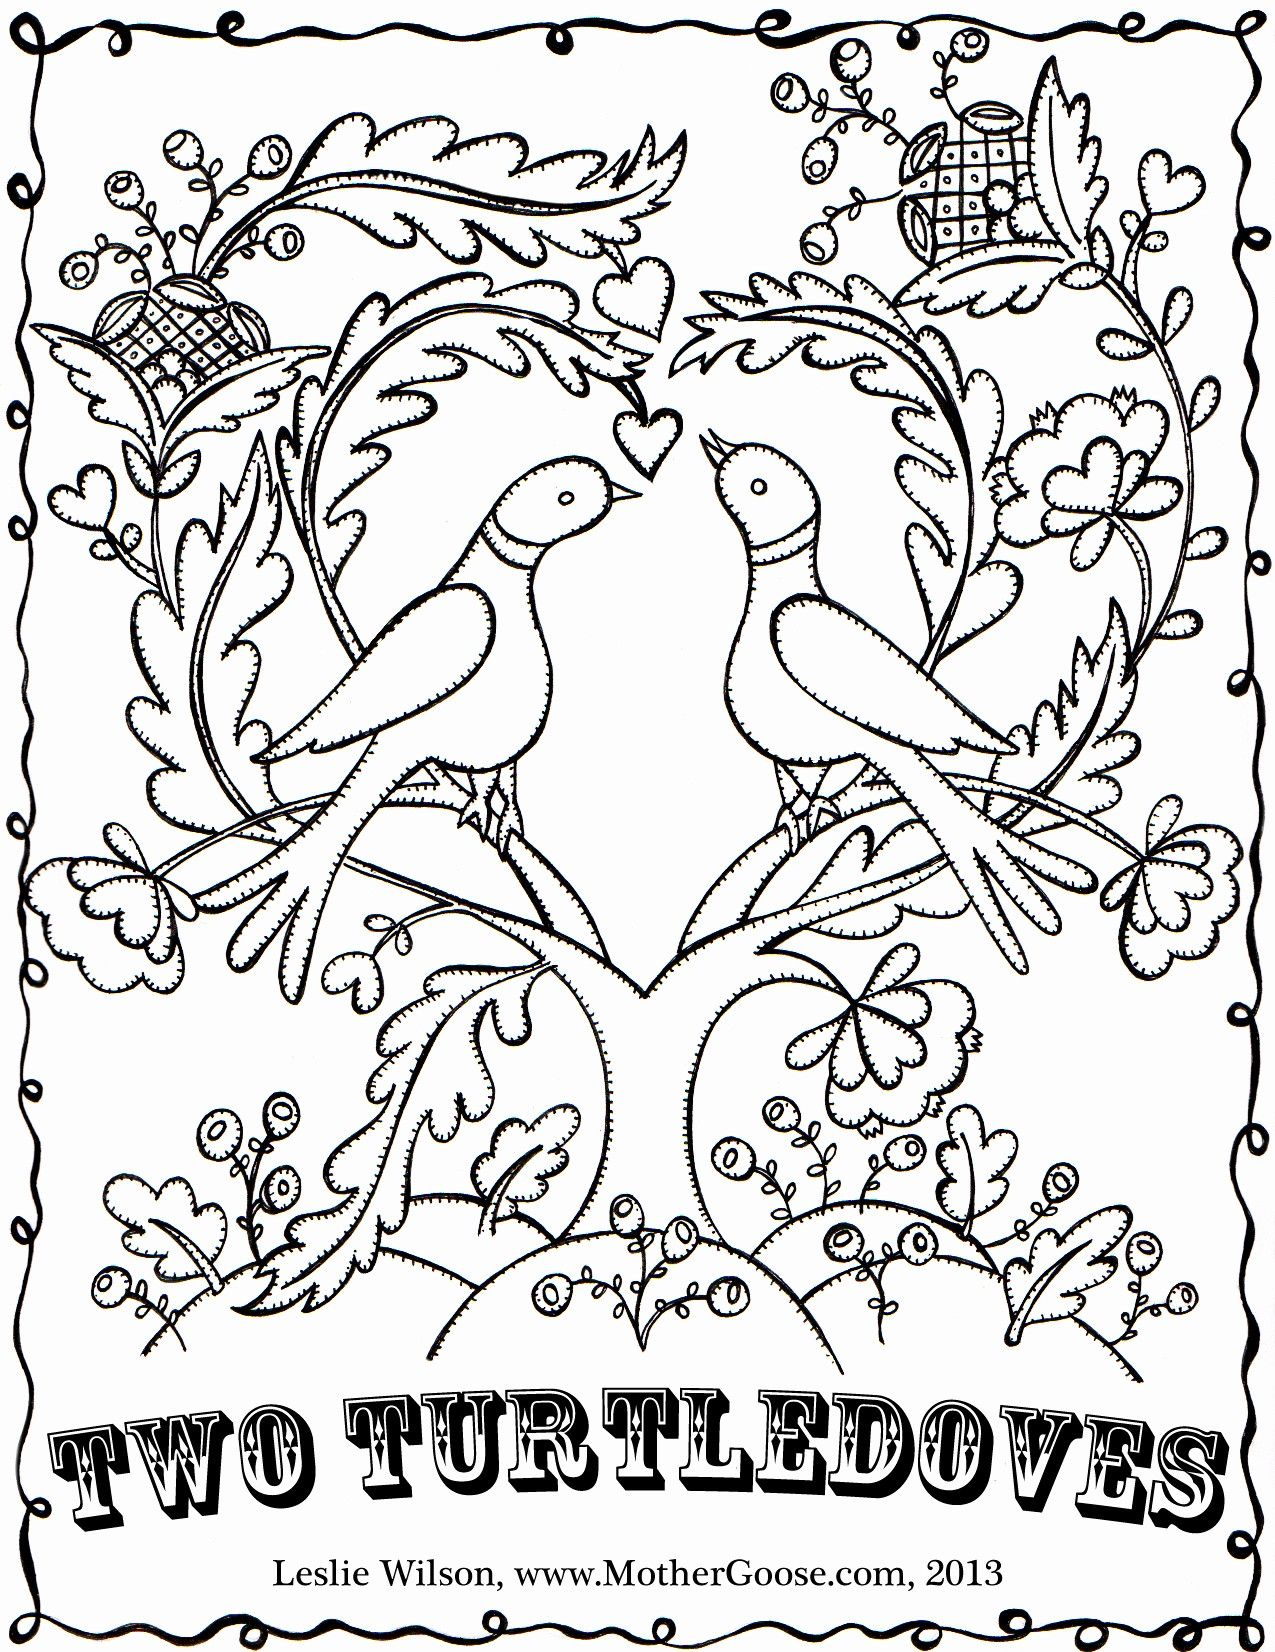 Two Turtle Doves Coloring Page Youngandtae Com Turtle Coloring Pages Coloring Pages Ninja Turtle Coloring Pages